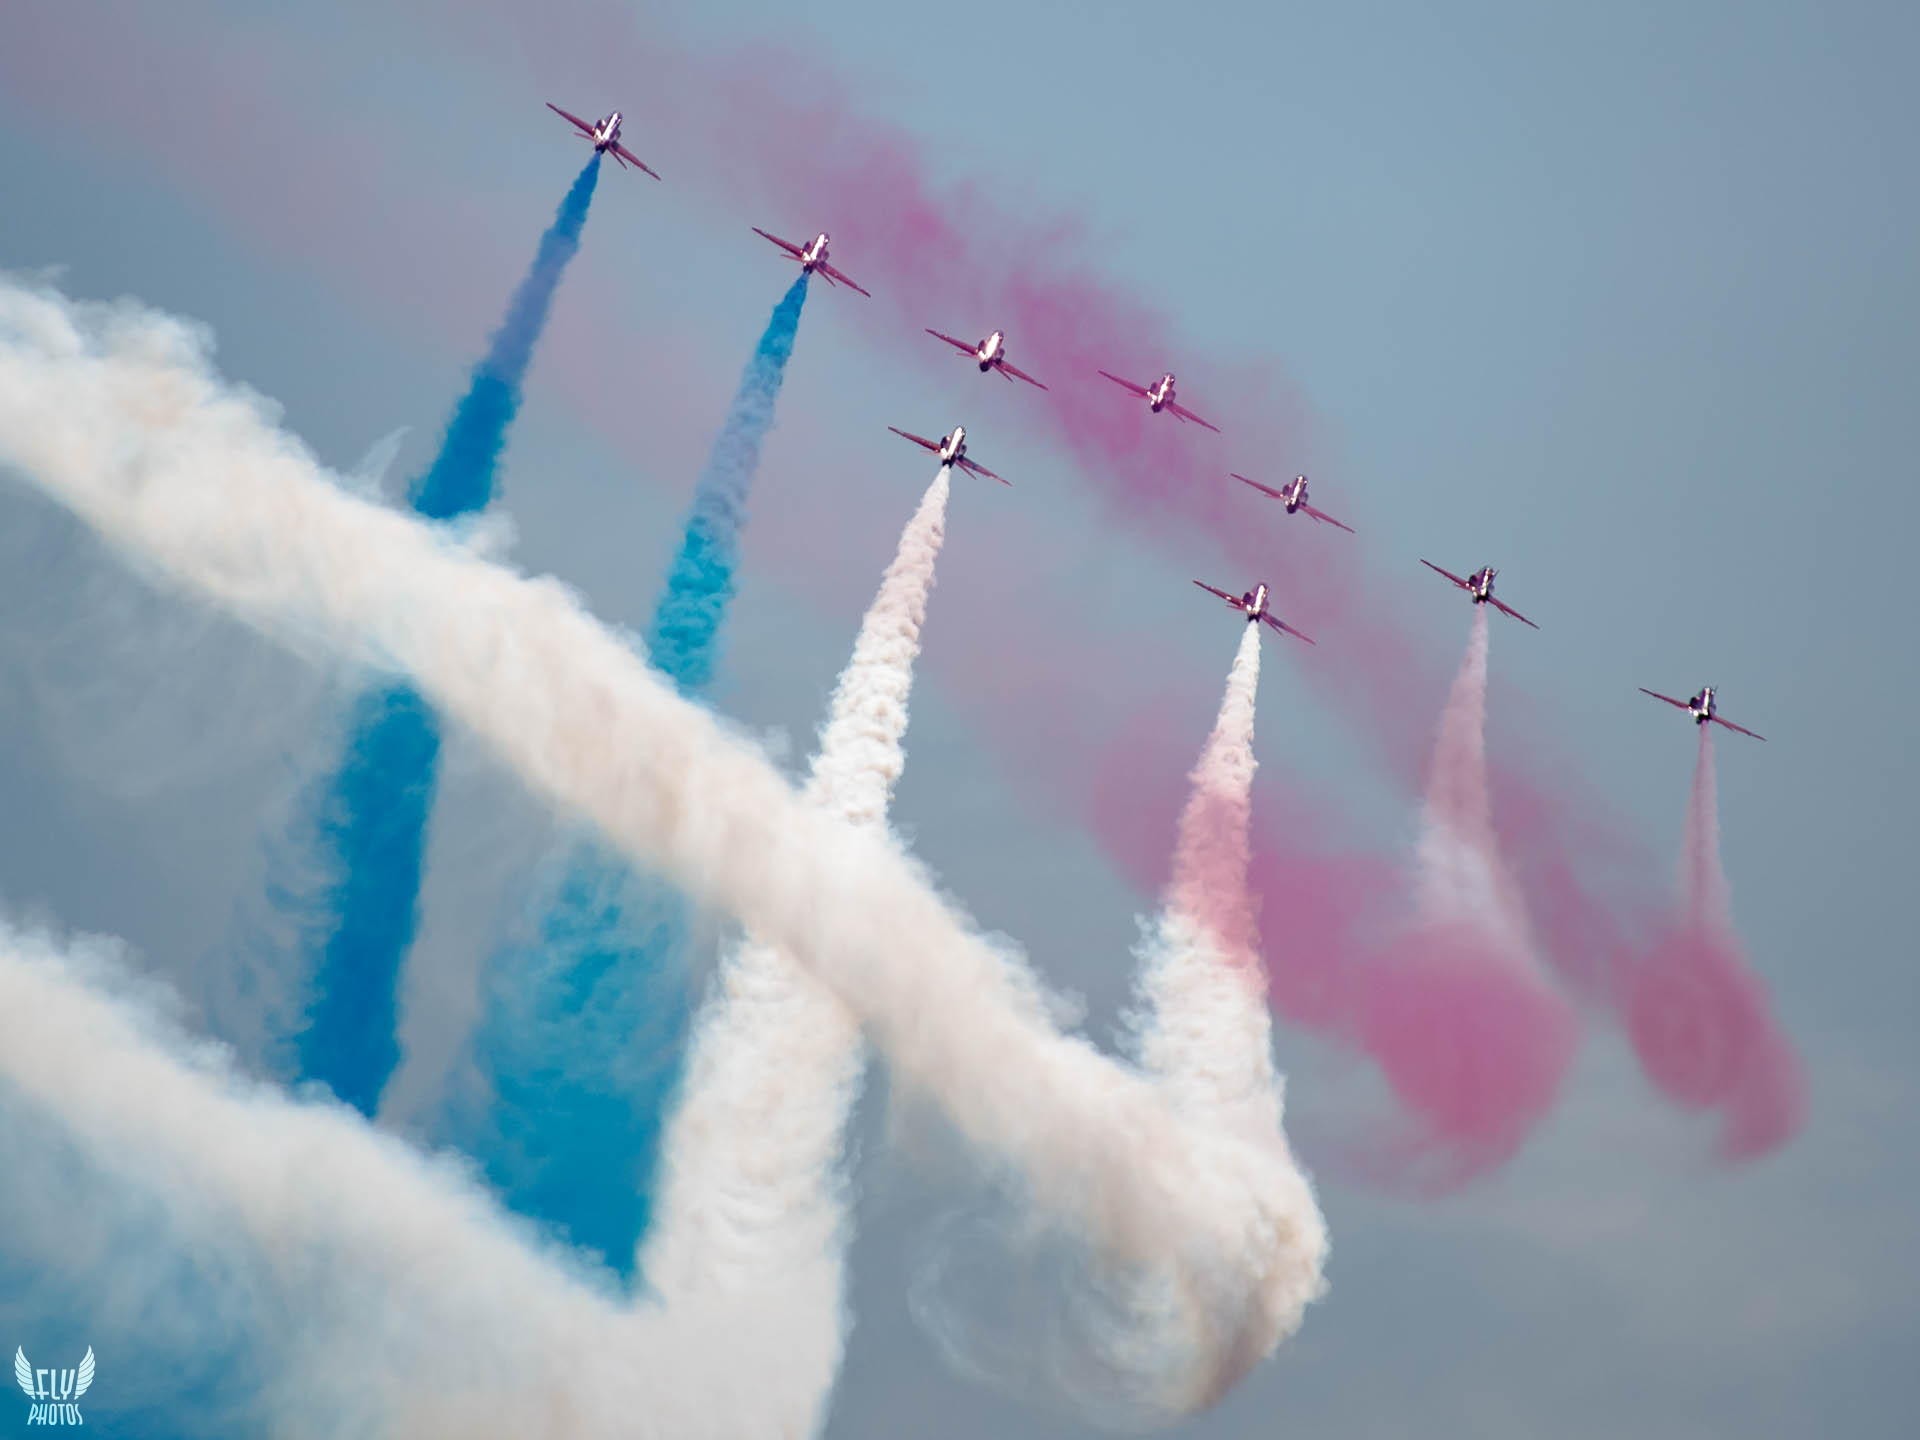 Photo of the day: The Reds, the blues and the whites;)